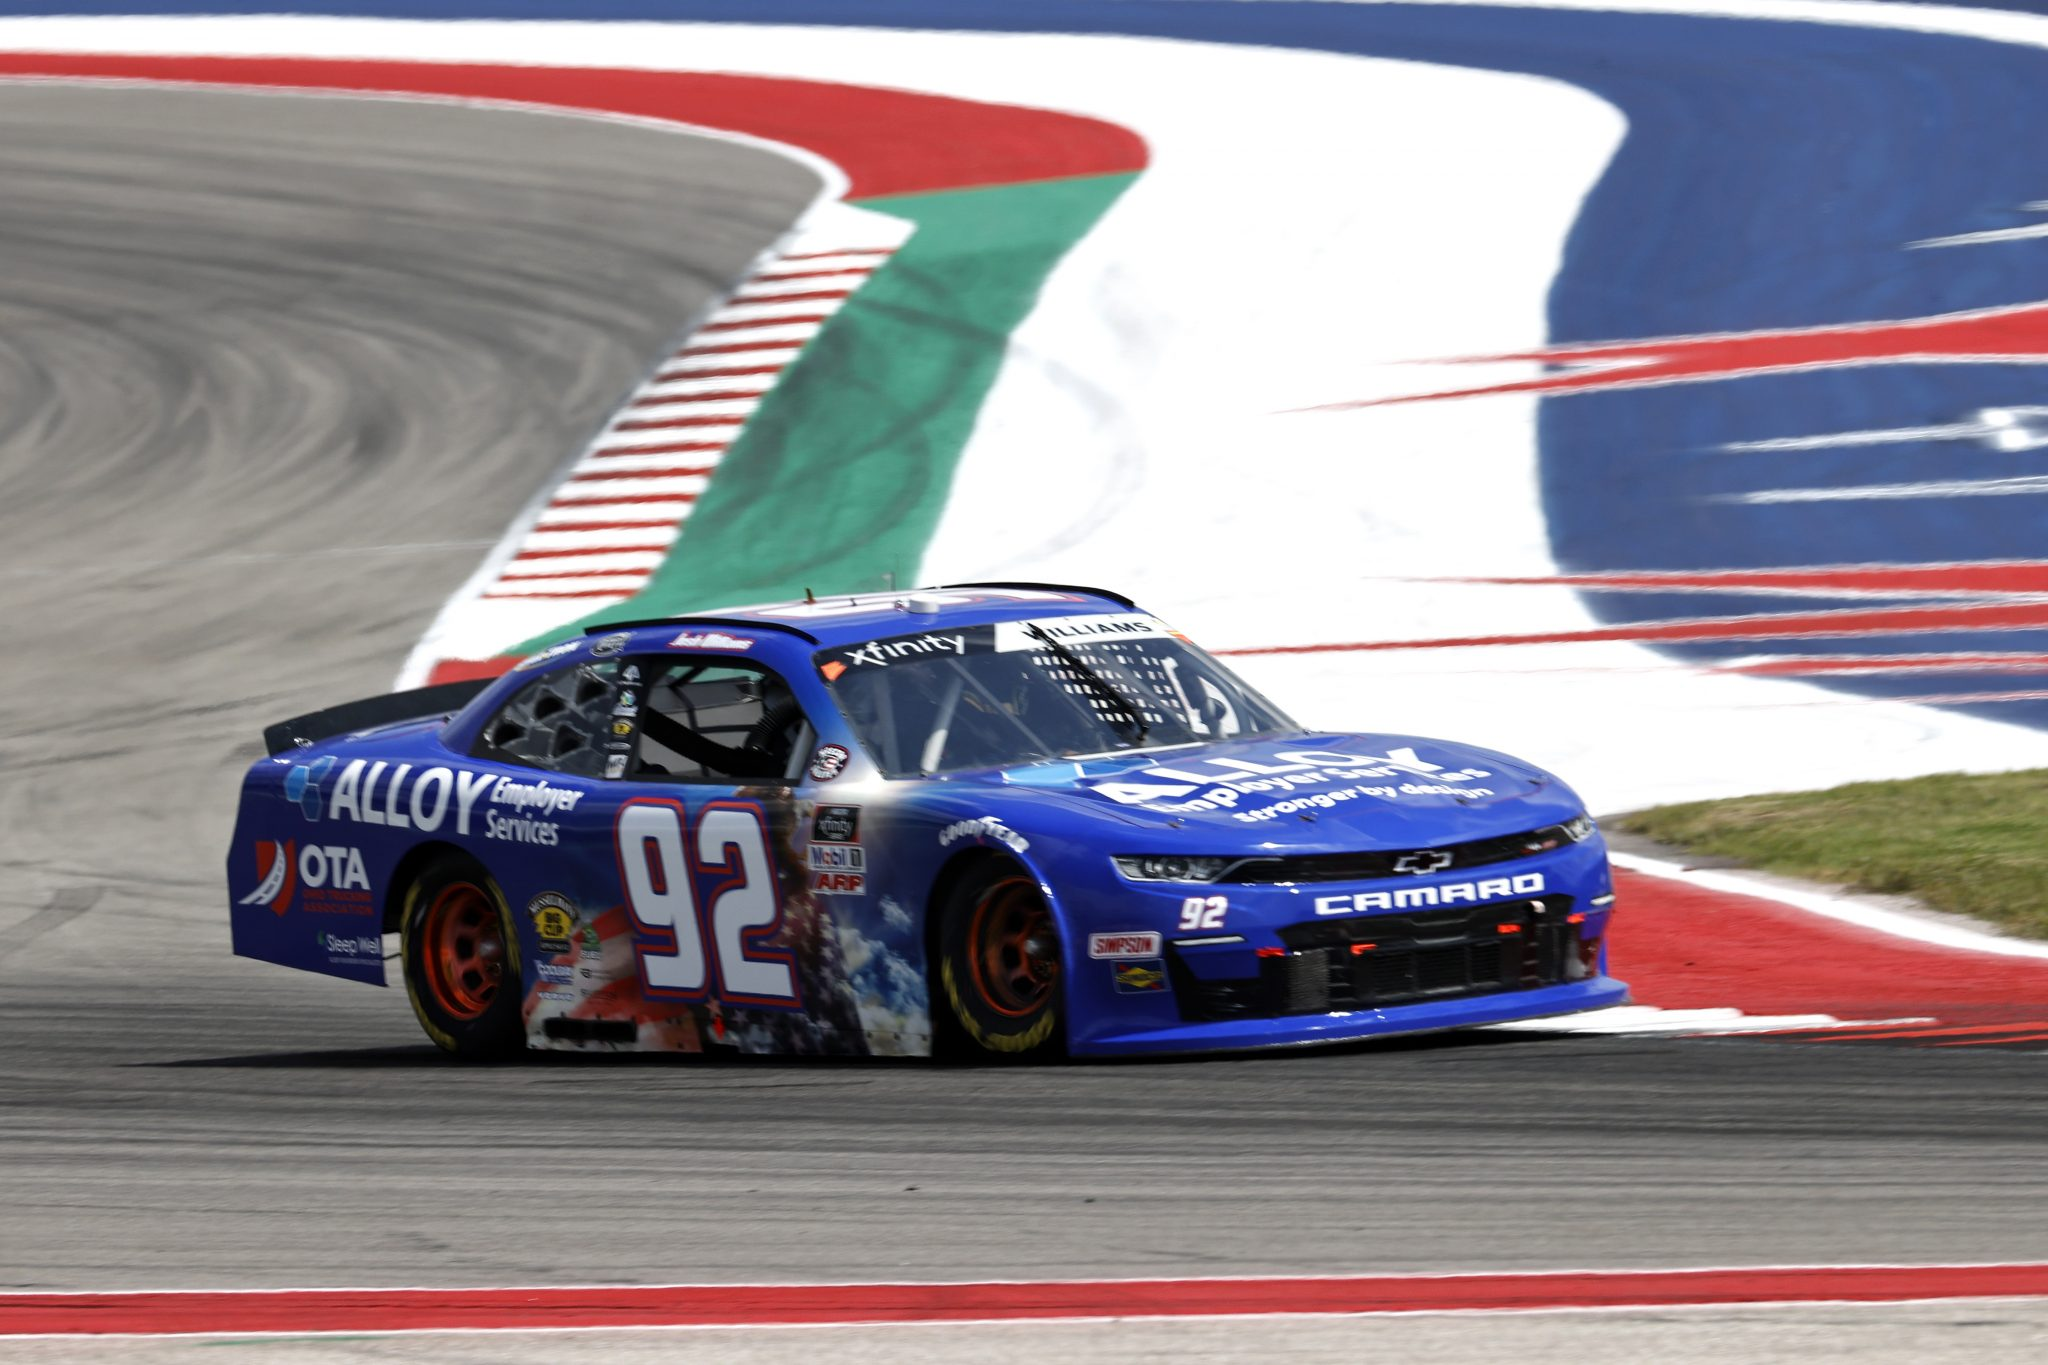 AUSTIN, TEXAS - MAY 21: Josh Williams, driver of the #92 Alloy Employer Services Chevrolet, drives during practice for the NASCAR Xfinity Series Pit Boss 250 at Circuit of The Americas on May 21, 2021 in Austin, Texas. (Photo by Chris Graythen/Getty Images) | Getty Images